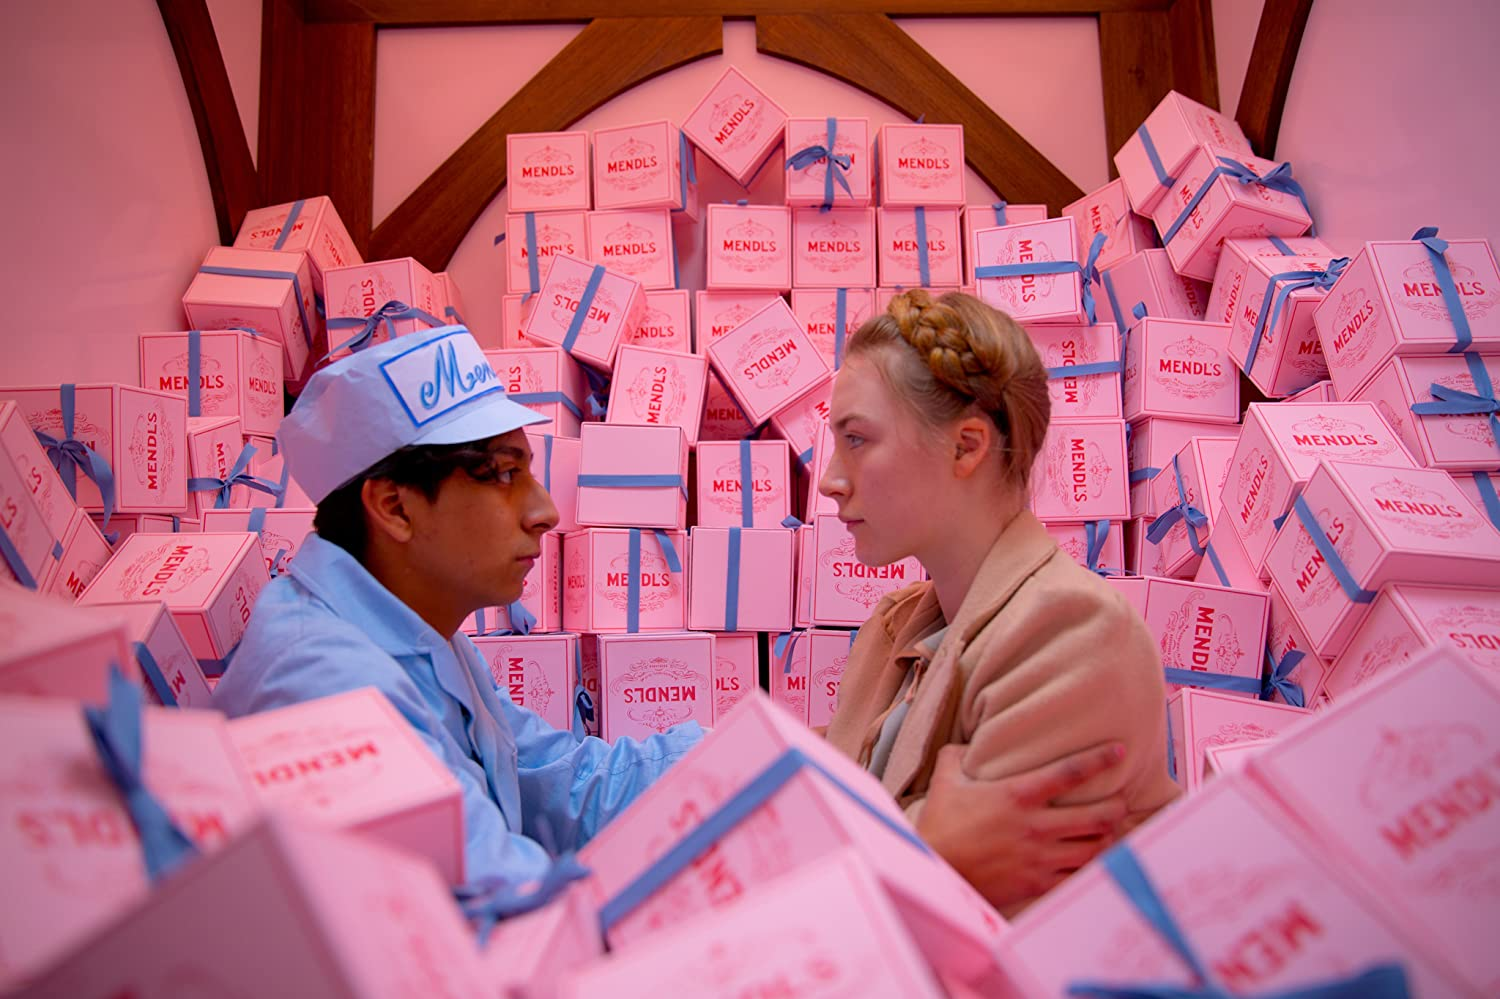 Saoirse Ronan and Tony Revolori in The Grand Budapest Hotel (2014)